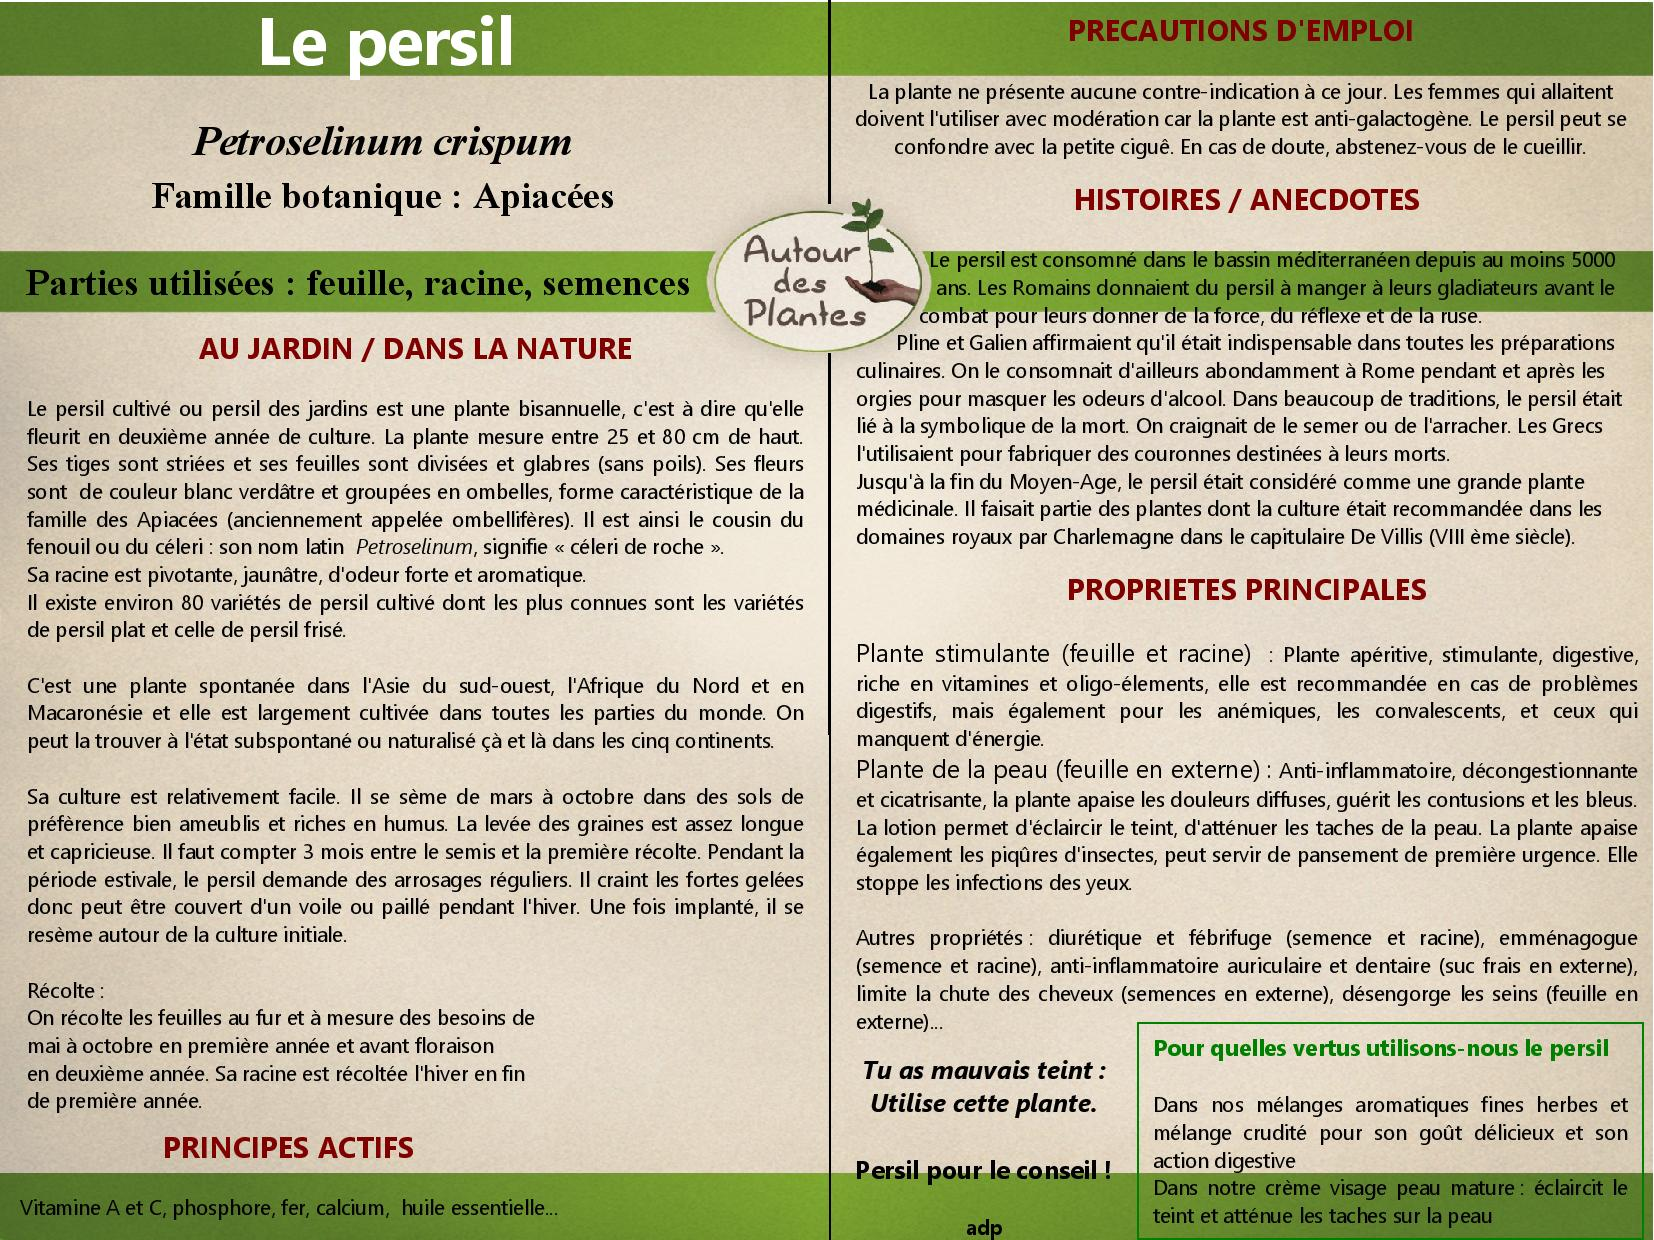 Le persil page 001